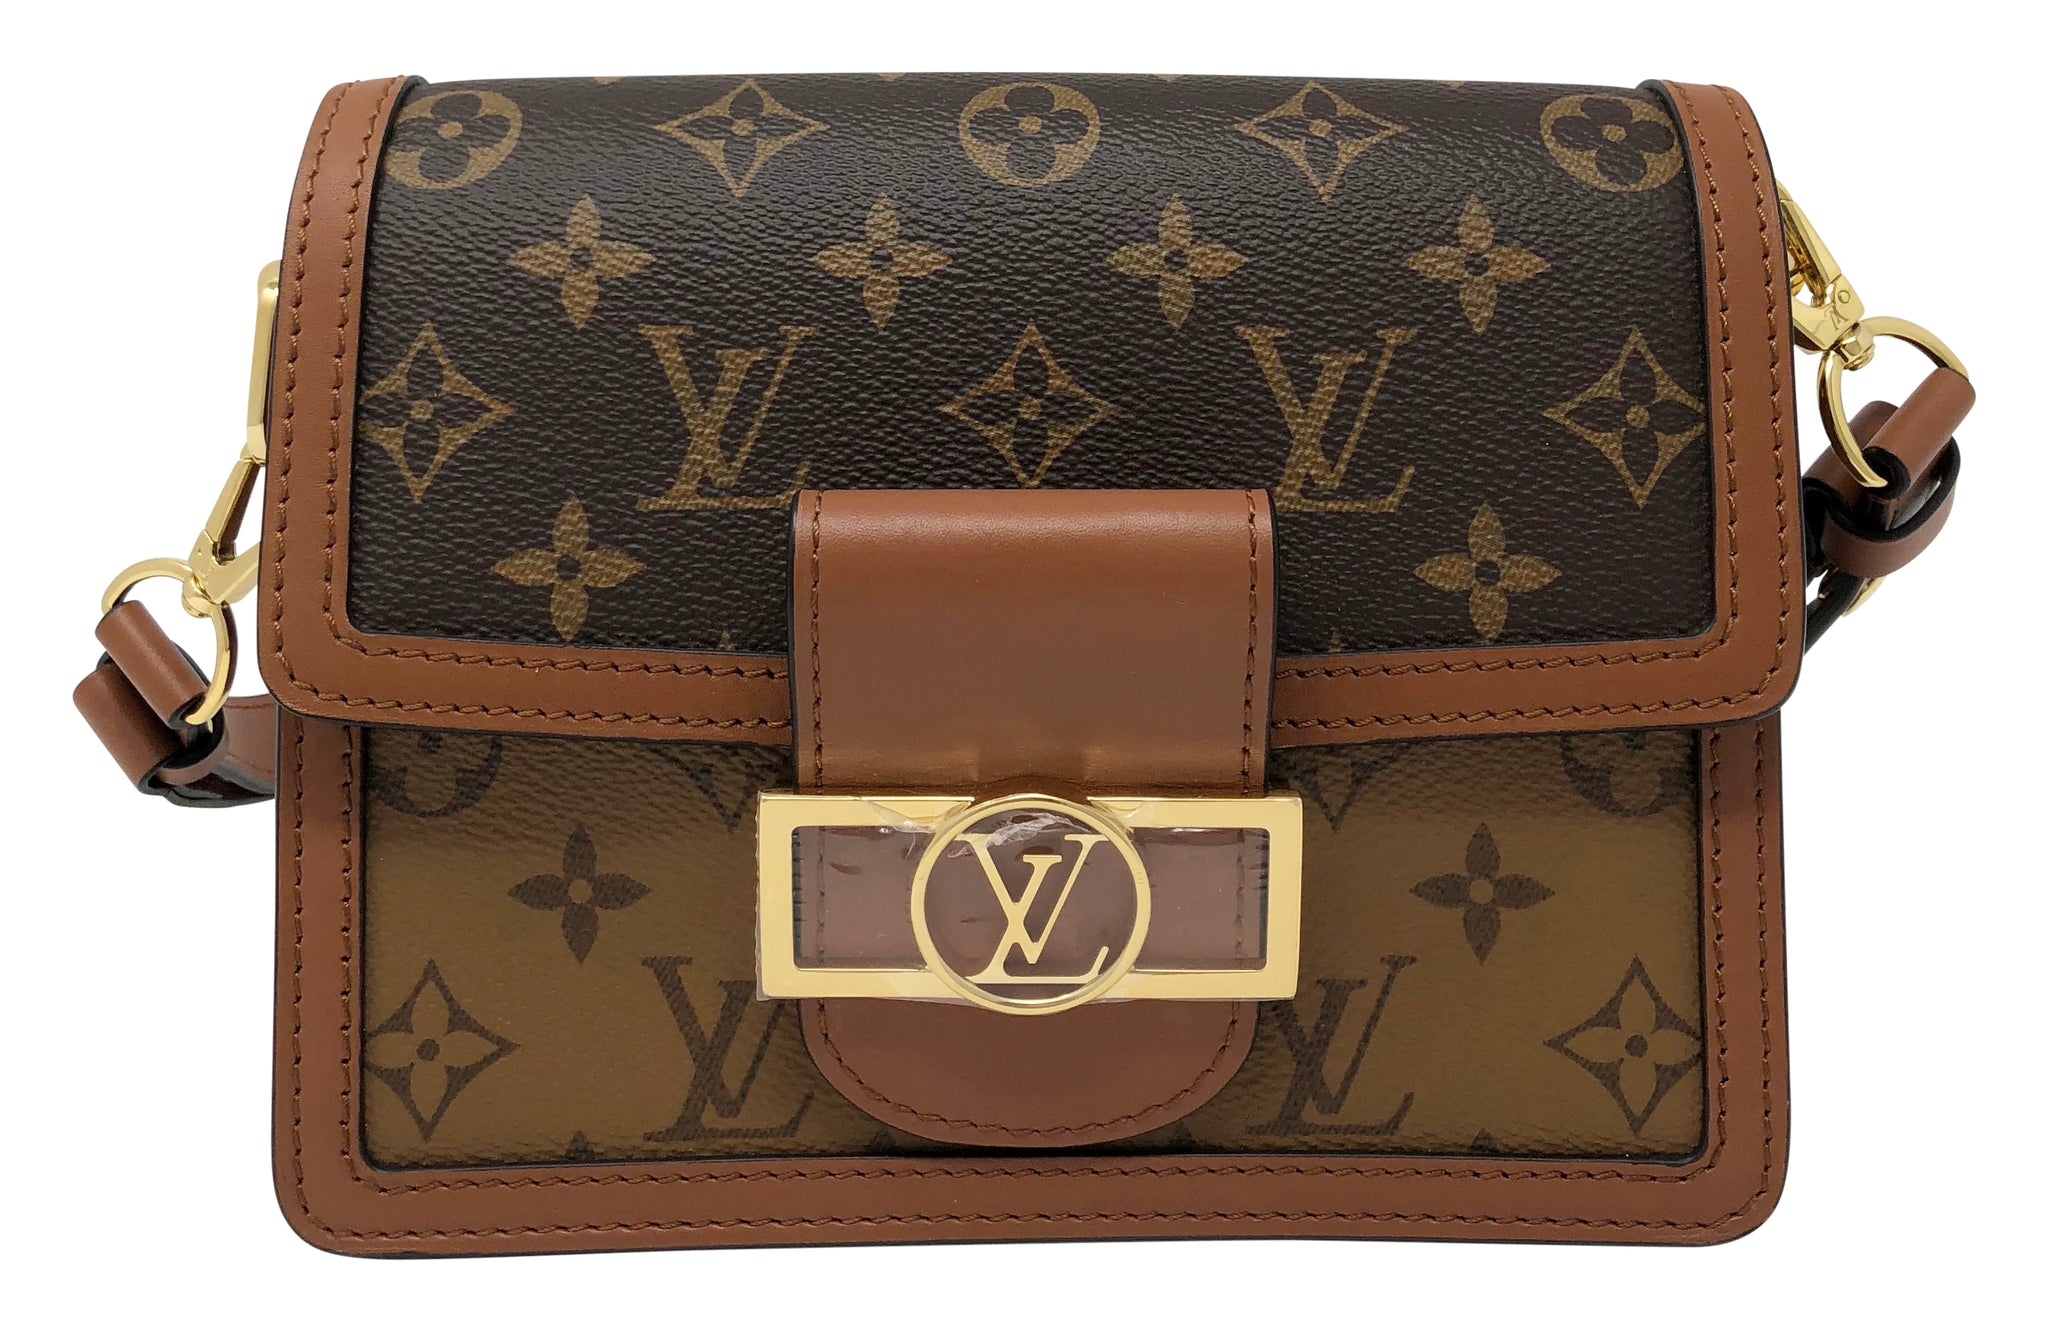 Louis Vuitton Mini Dauphine